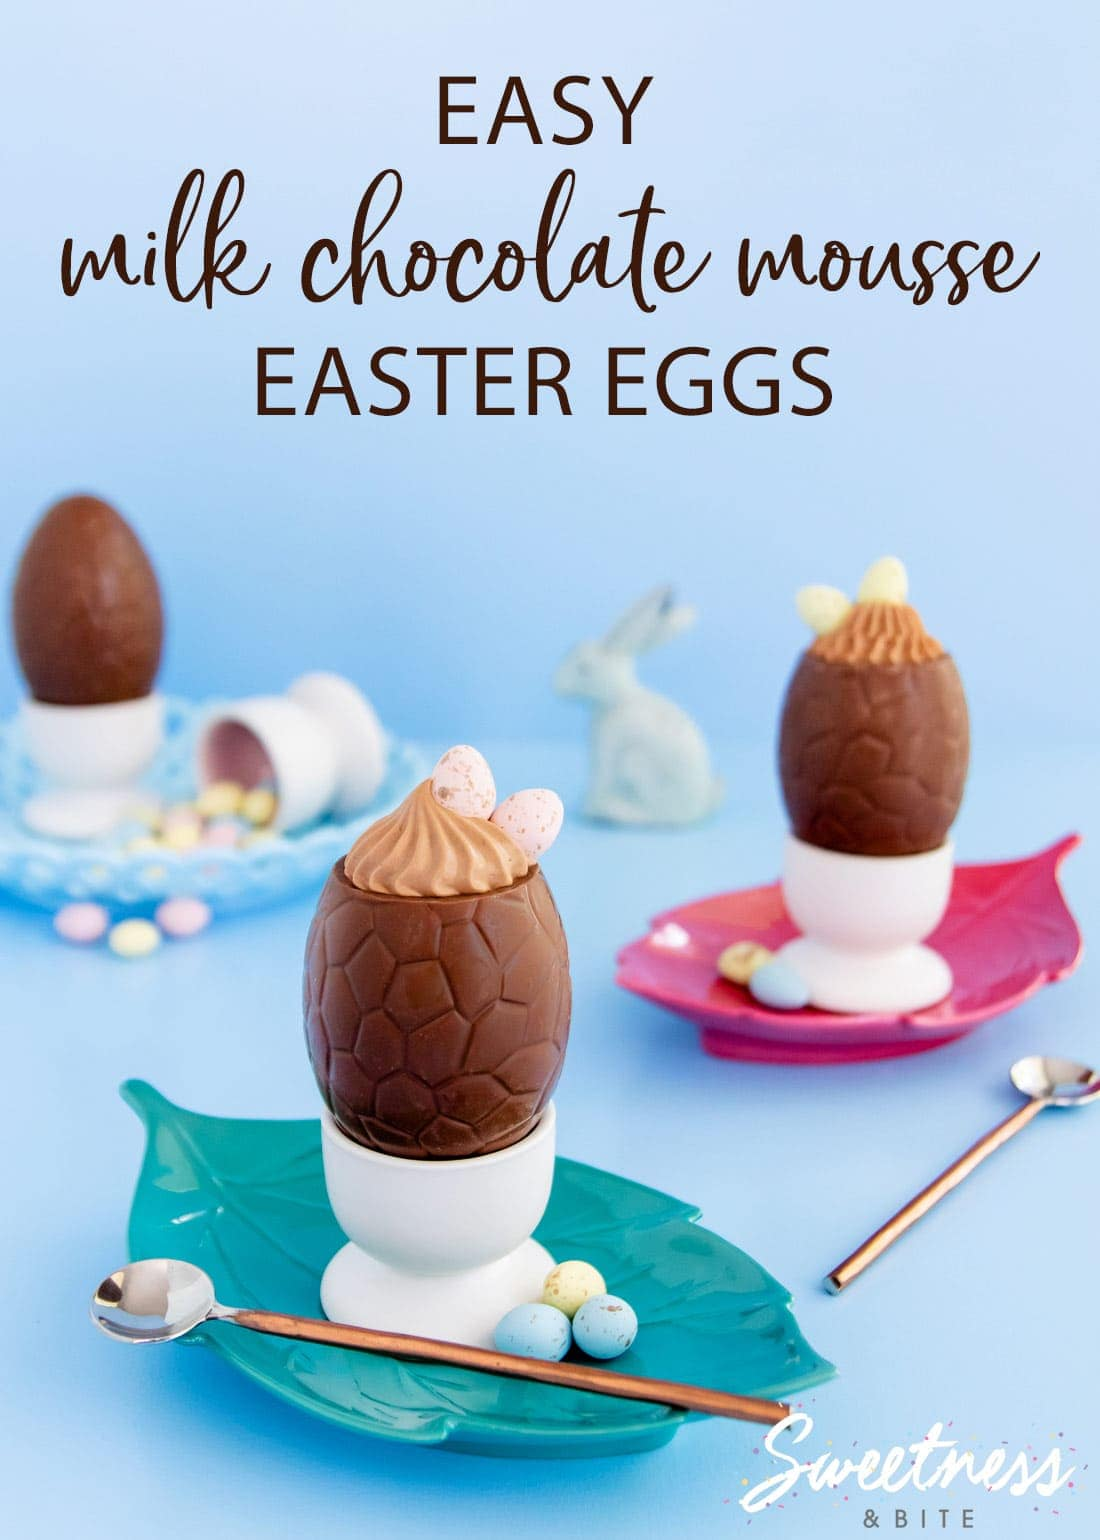 Milk chocolate mousse filled Easter eggs, sitting in egg cups on green and pink plates.